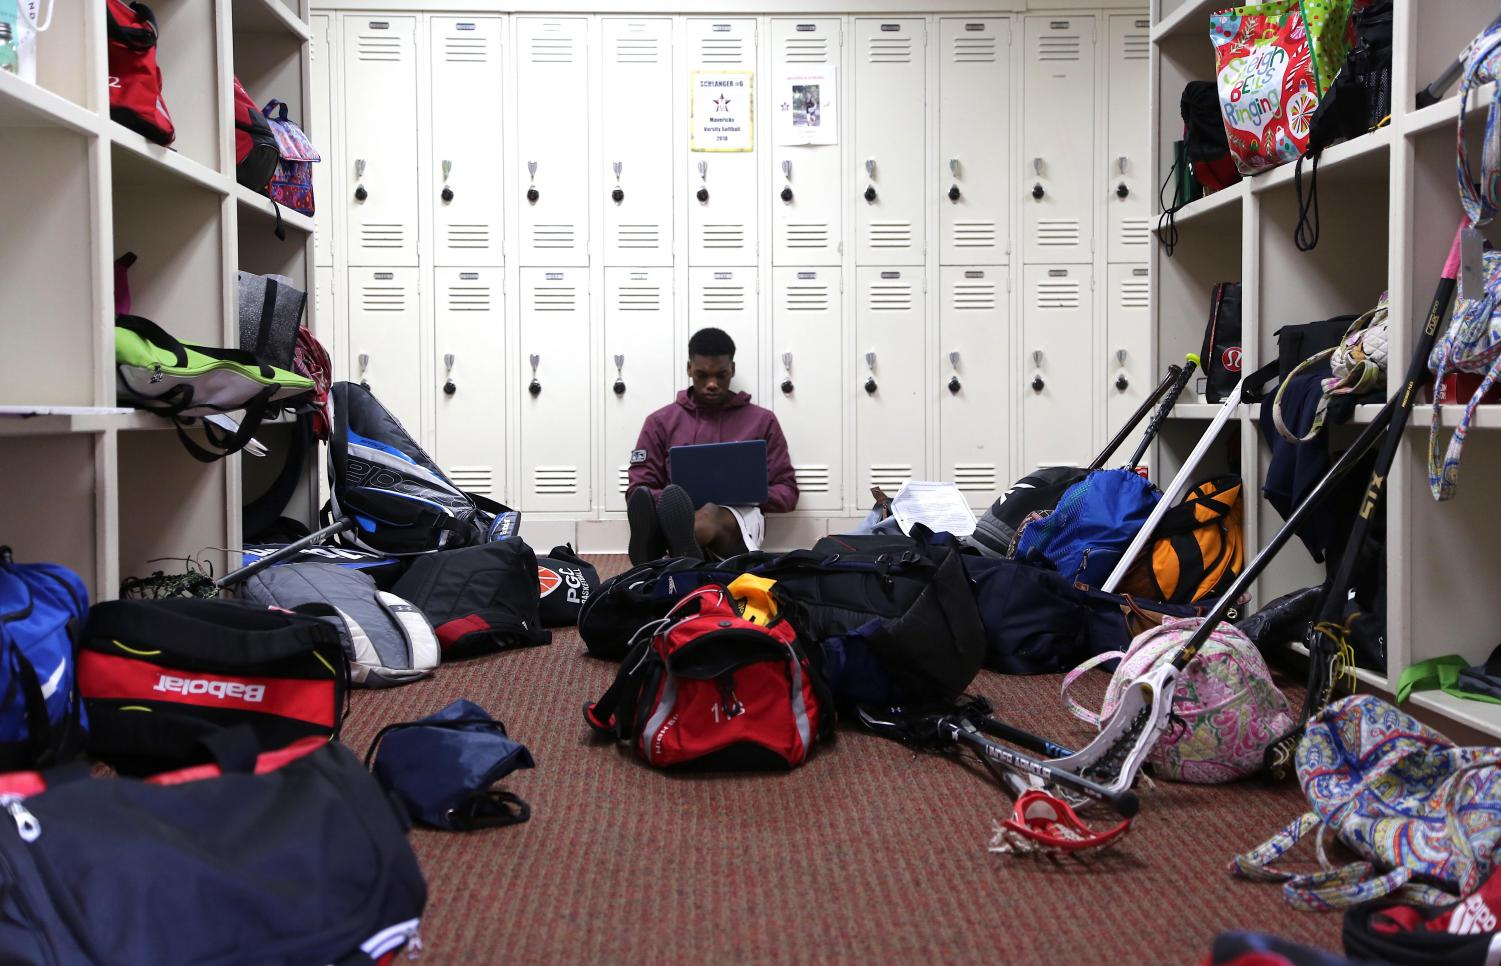 Sophomore Aloye Oshotse works amidst the bags strewn across the hallway.